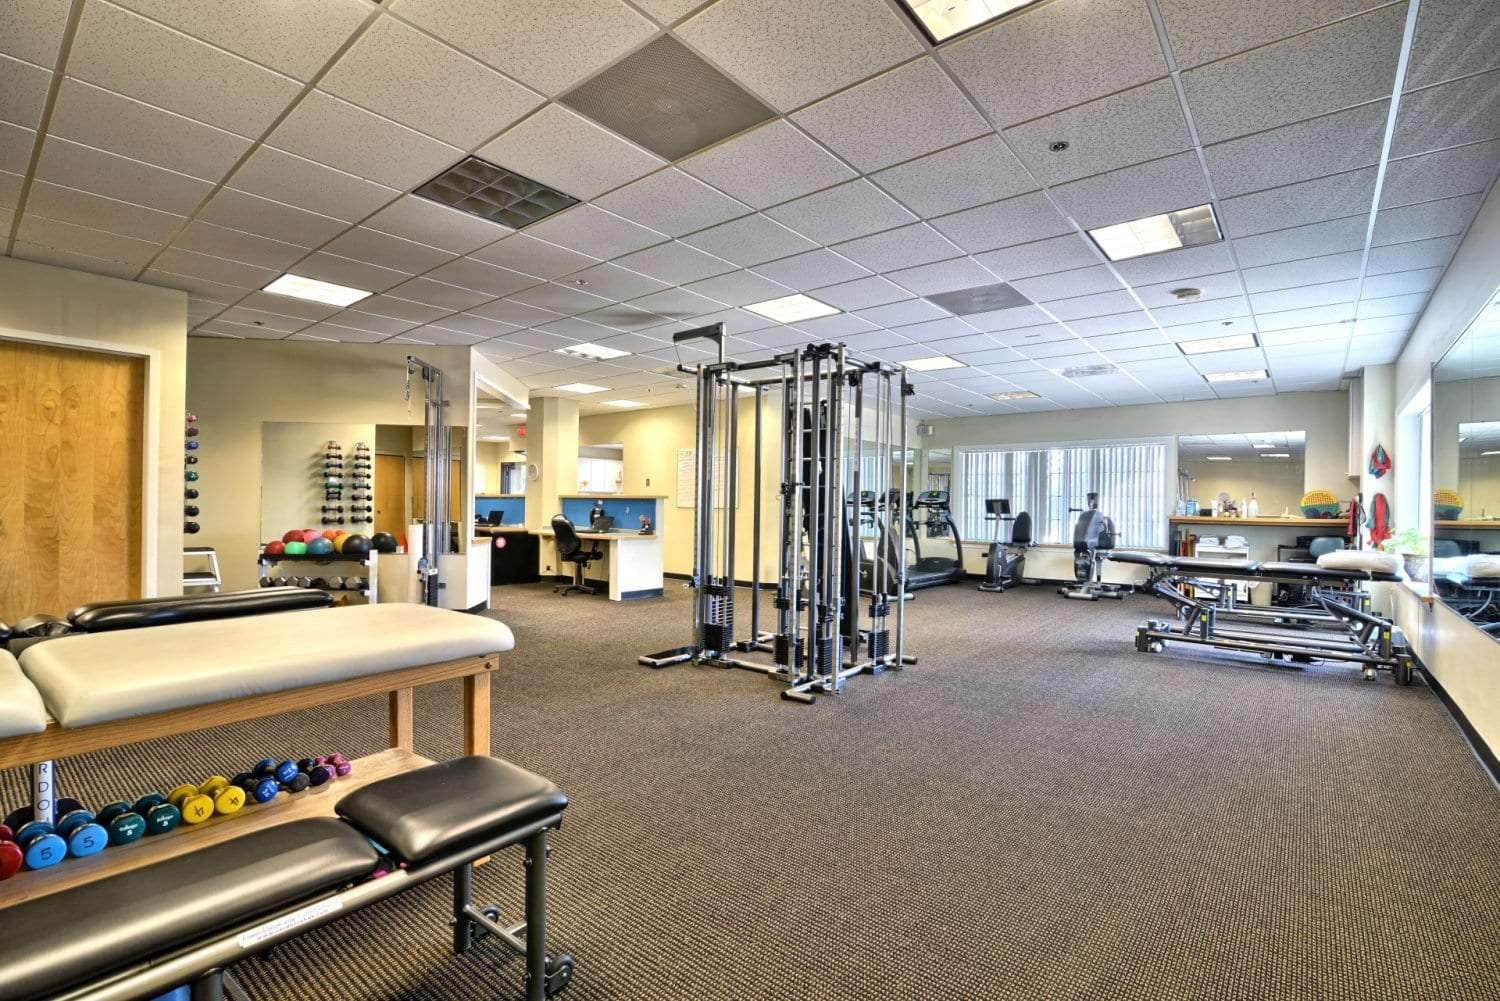 An image of the interior of our physical therapy clinic in Salem, Massachusetts.